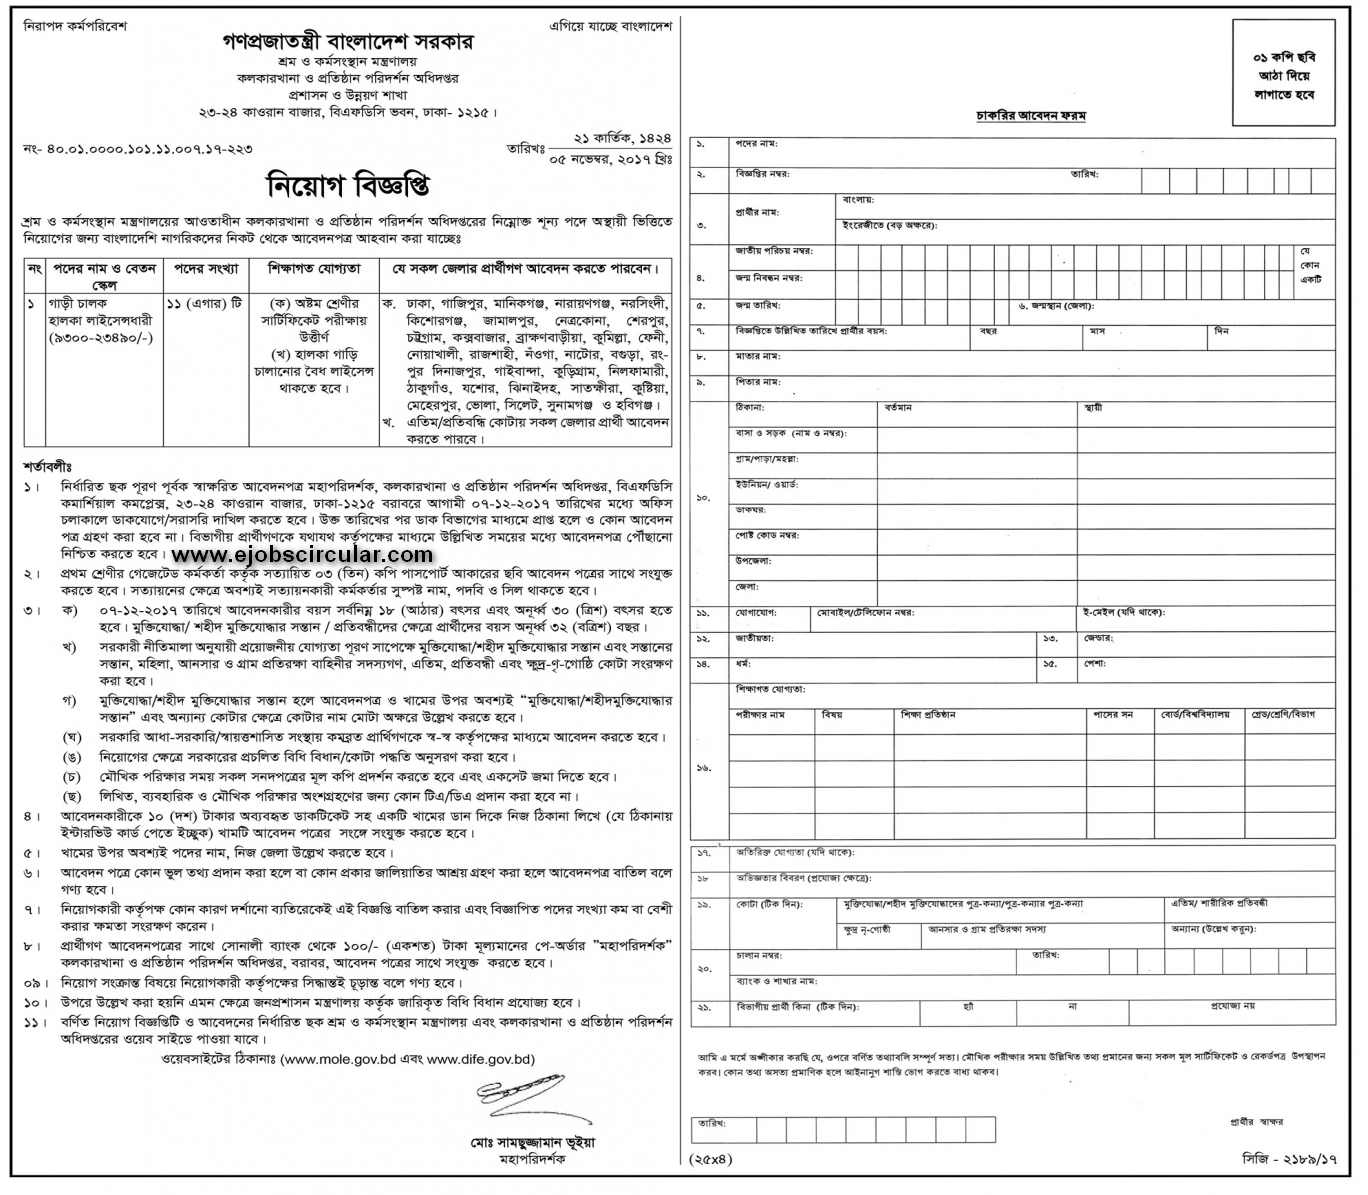 job applications online, job payment receipt, cover letter form, cv form, job search, agreement form, job letter, job requirements, job advertisement, job applications you can print, employee benefits form, job vacancy, job opportunity, job openings, contact form, job resume, on govt job application form 2017 bd